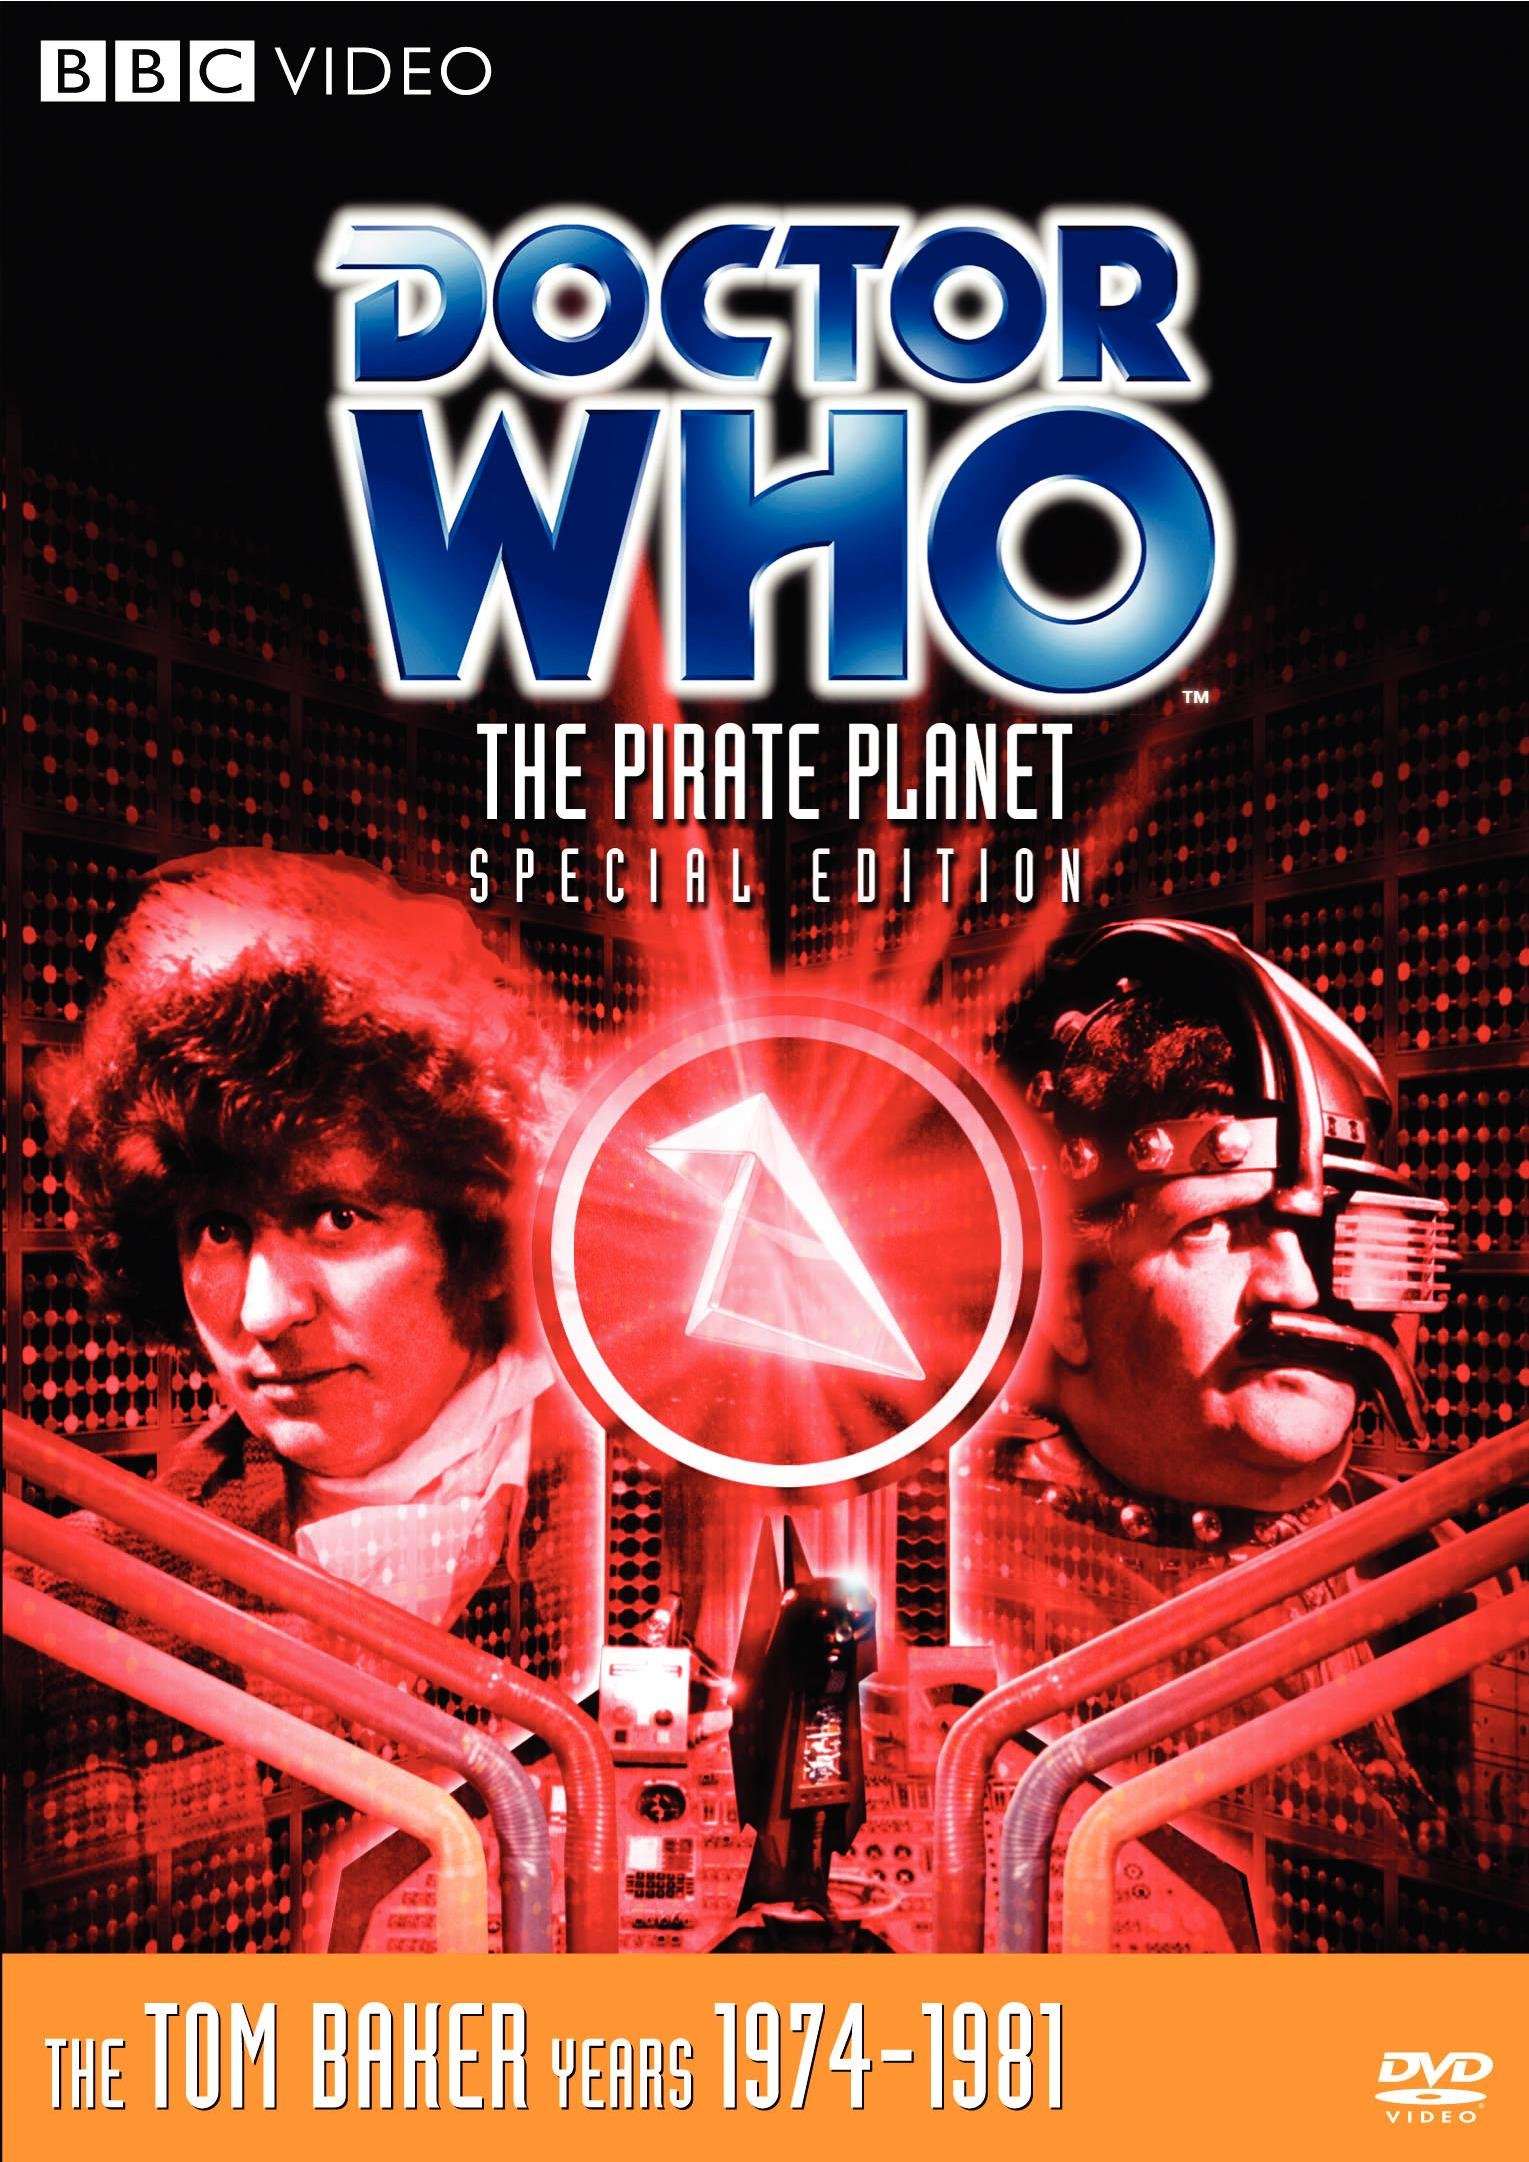 Doctor Who: The Pirate Planet (Story 99, The Key to Time Series Part 2) (Special Edition)